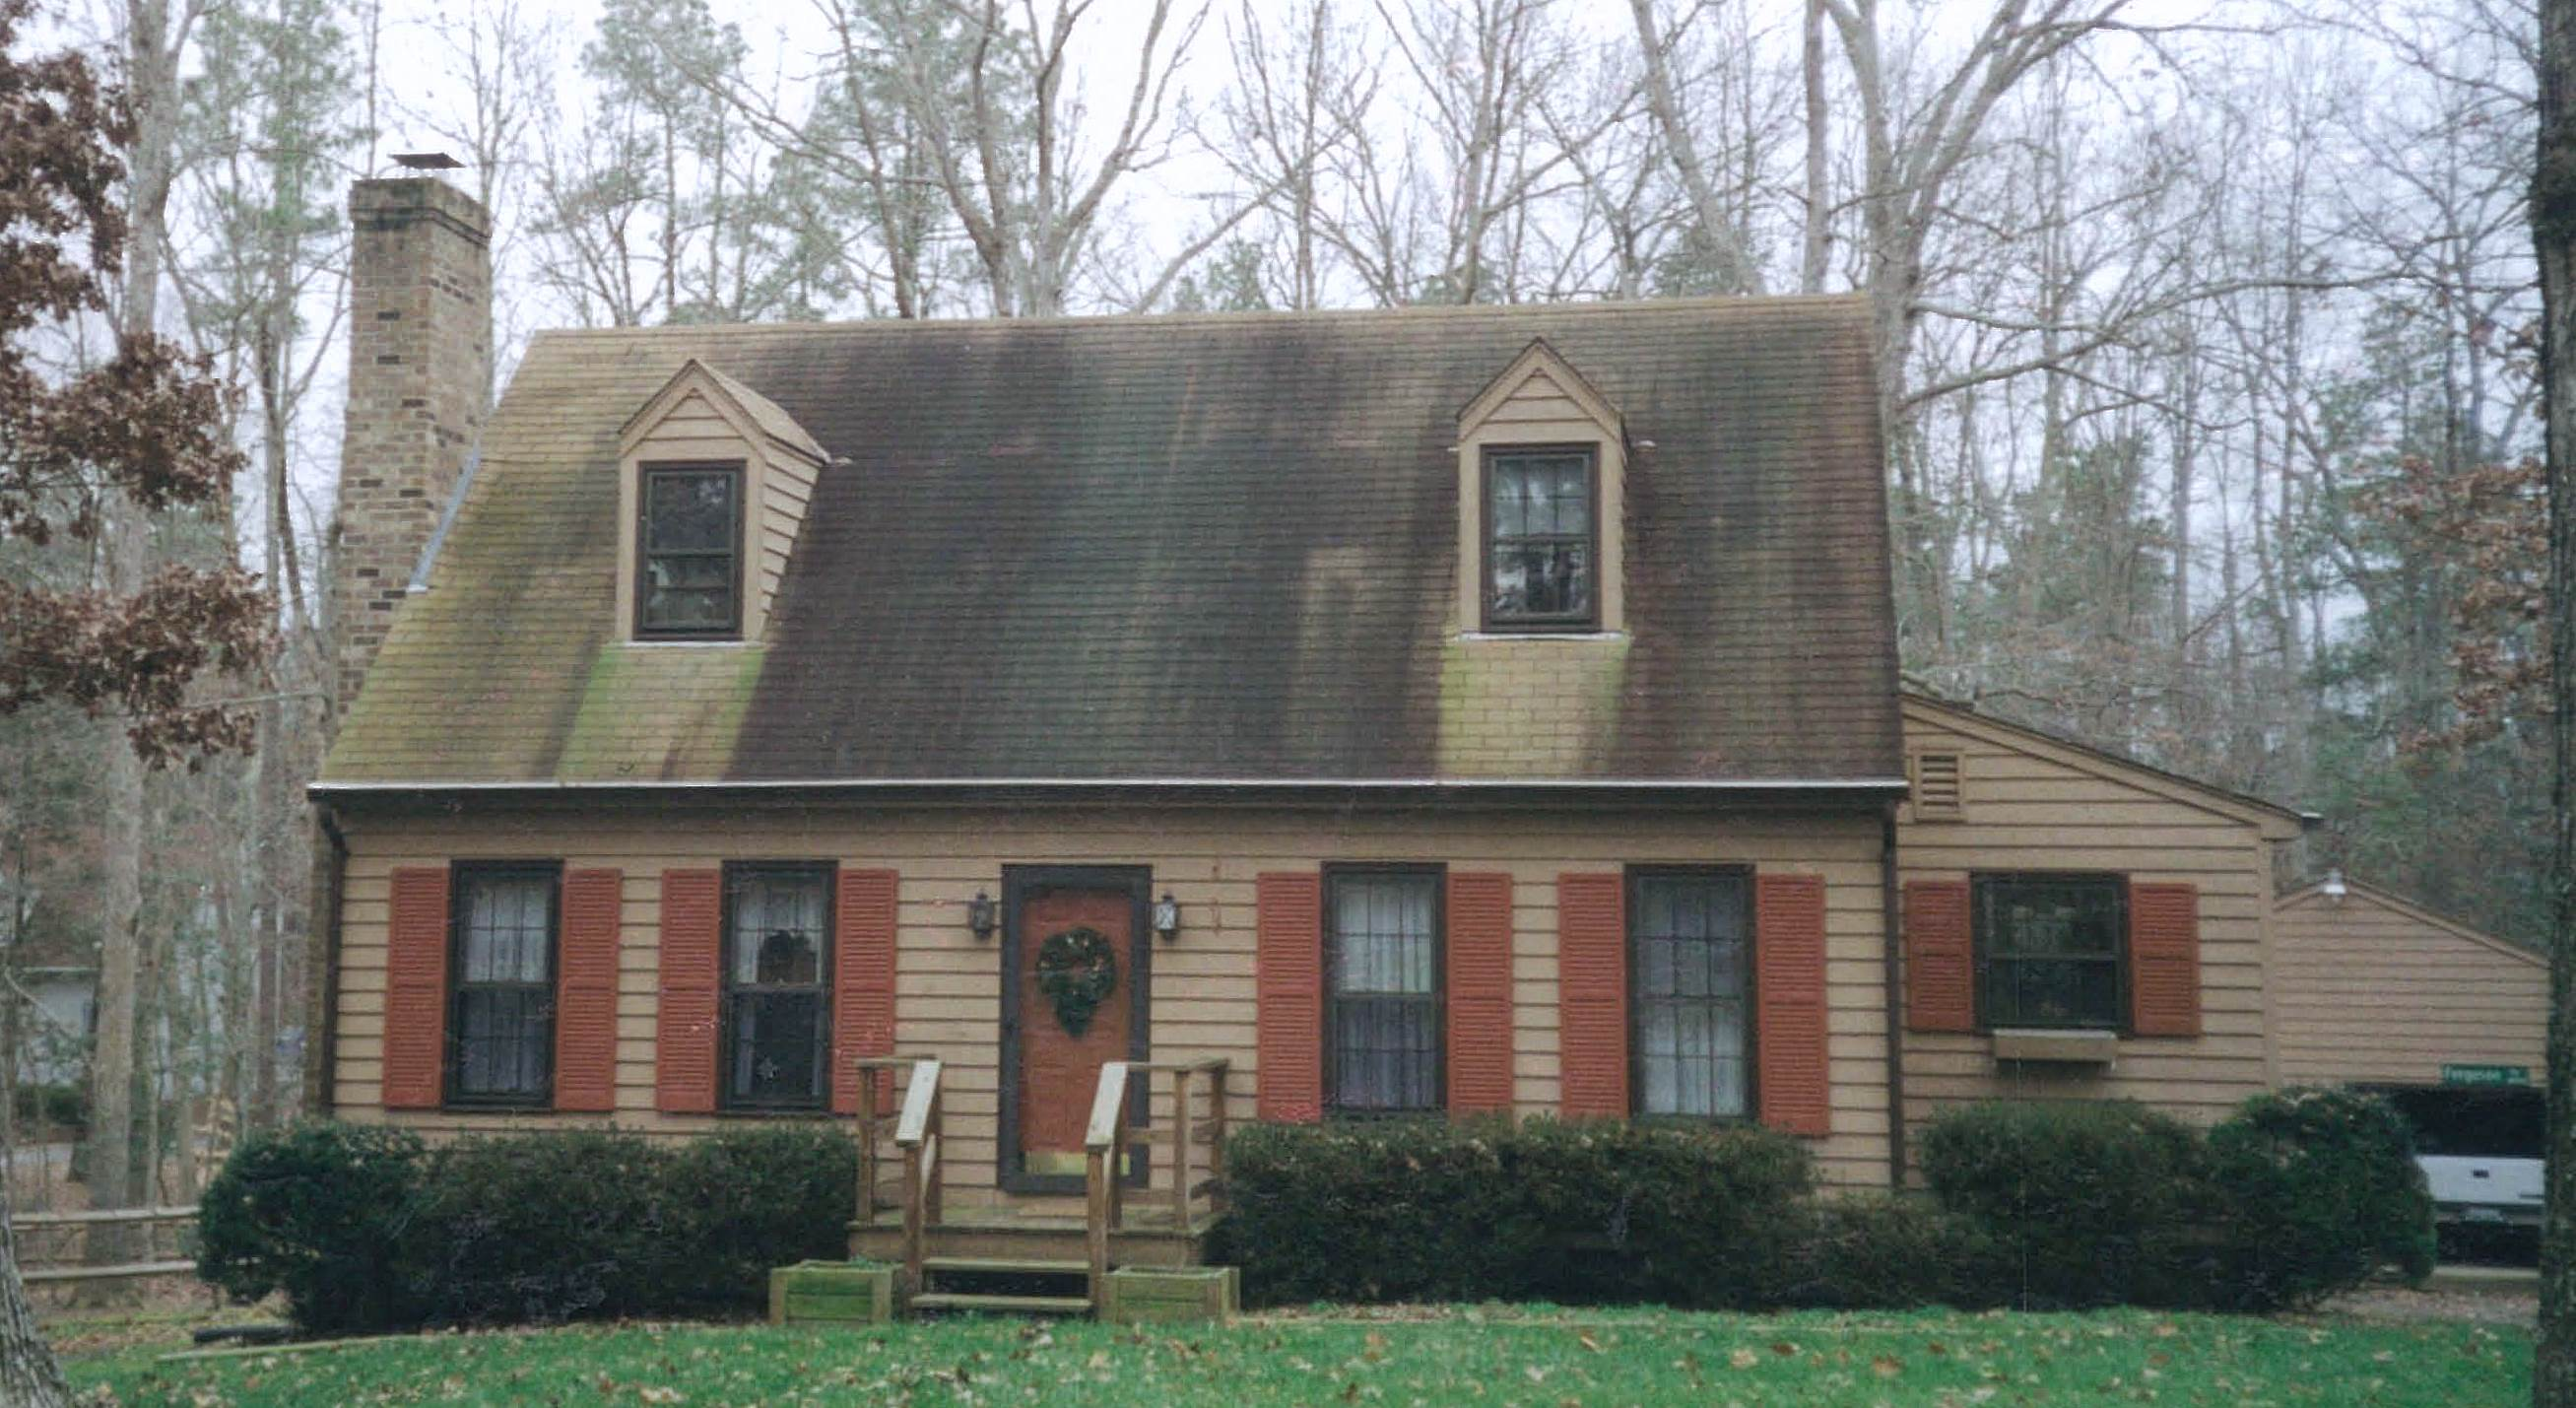 Does Your Home Need Roof Cleaning?